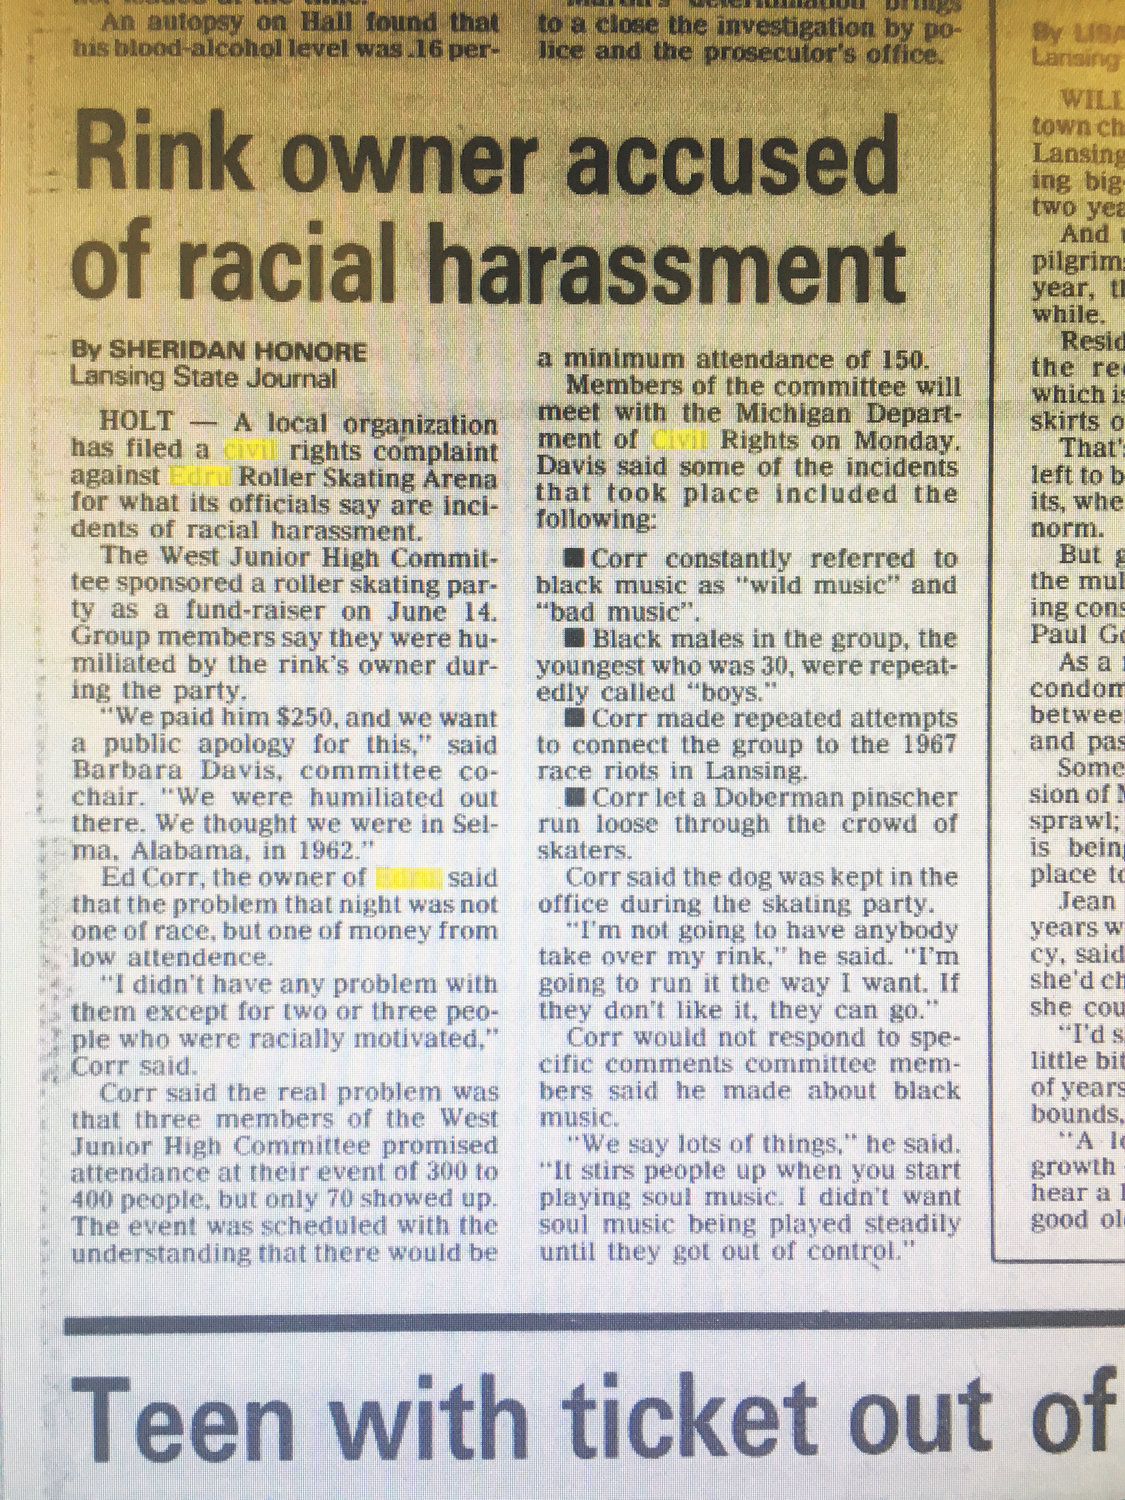 A Lansing State Journal article June 20, 1990, reporting an incident between Edru's owner and African-American customers.